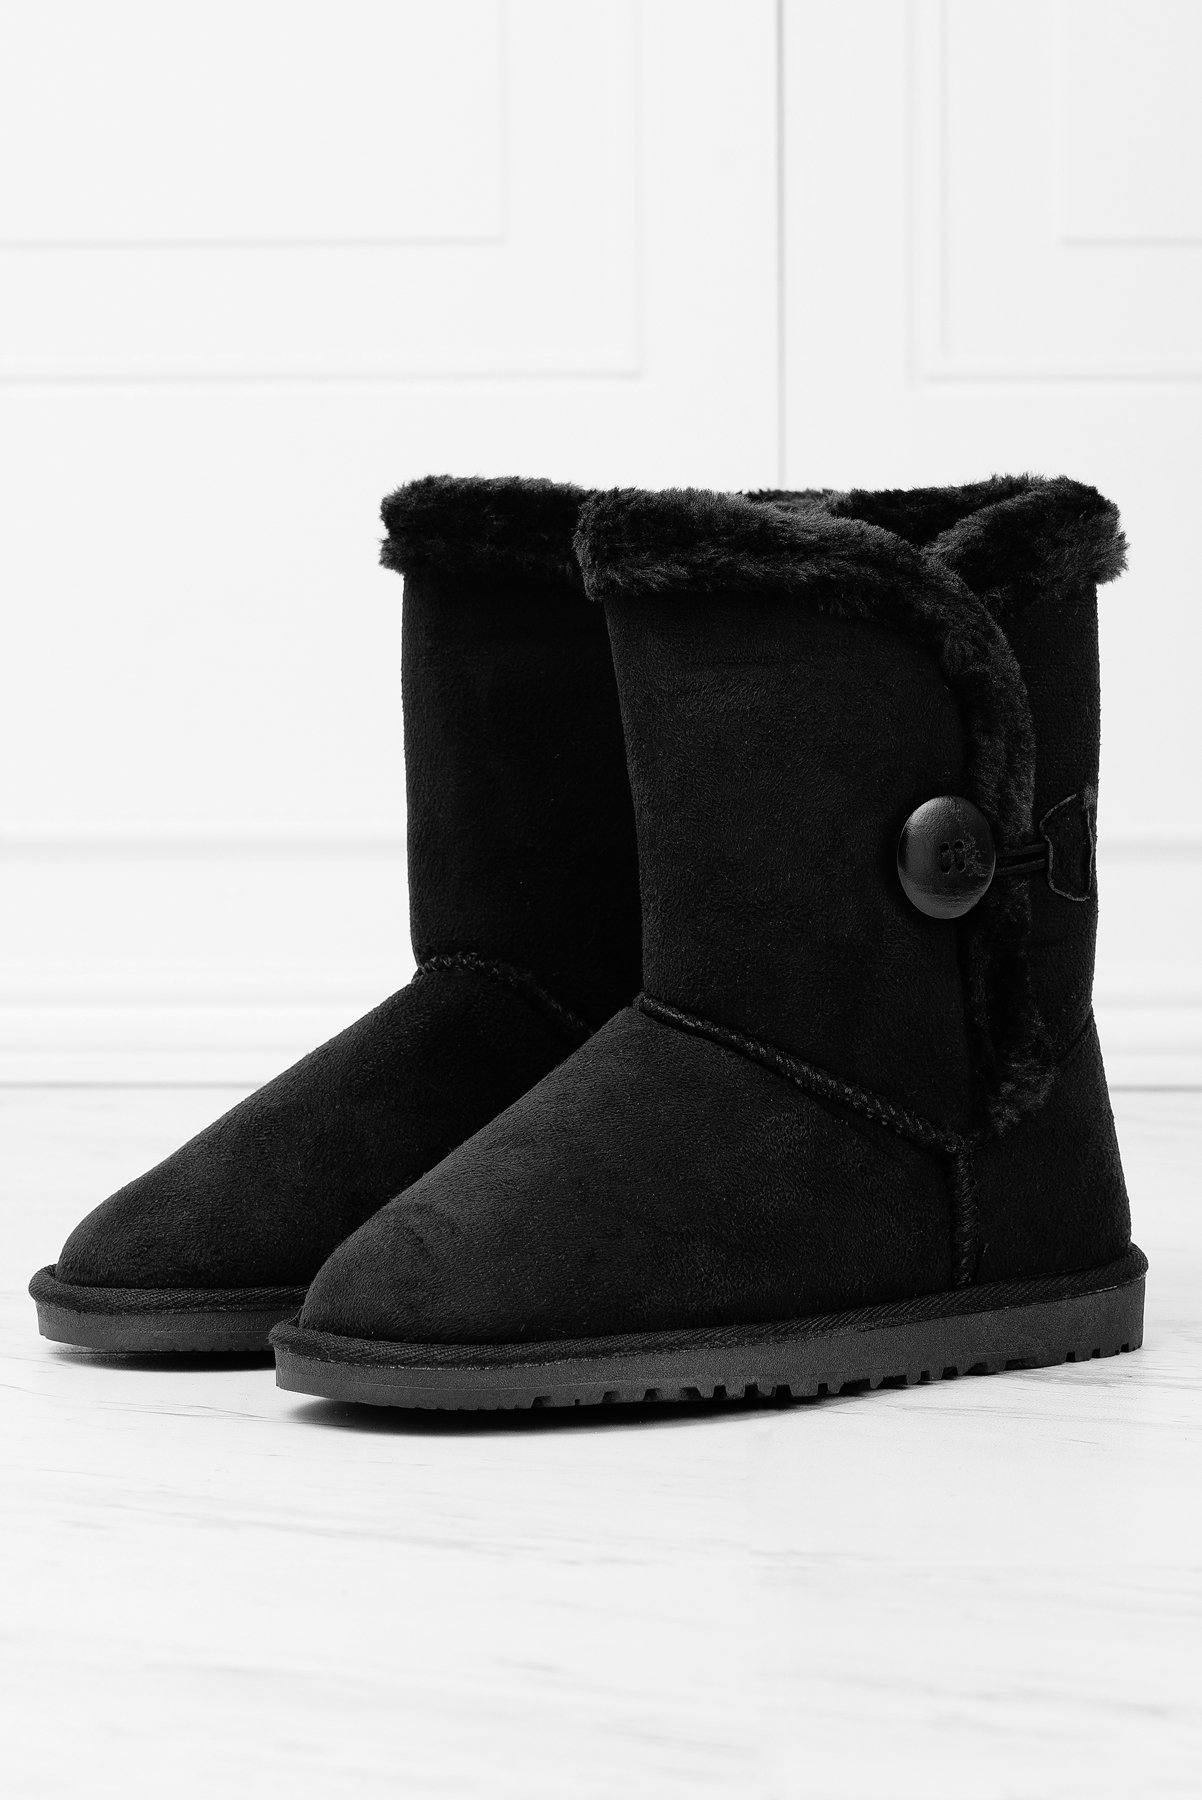 Shoes - Temptation Boots - Black